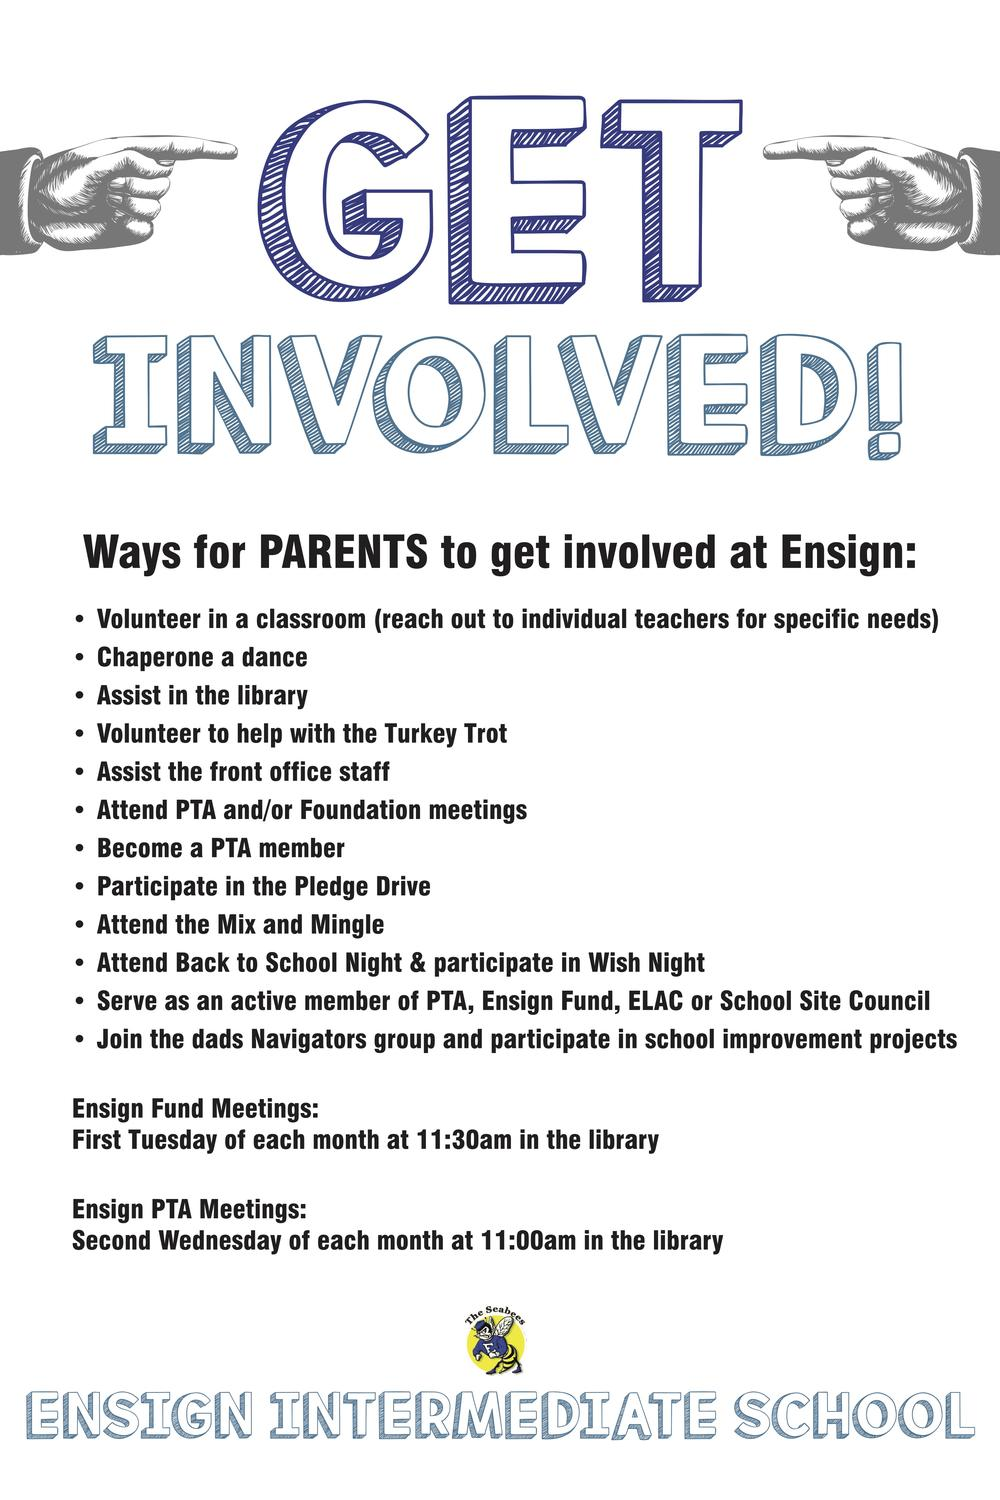 Ways to get involved as a parent flyer